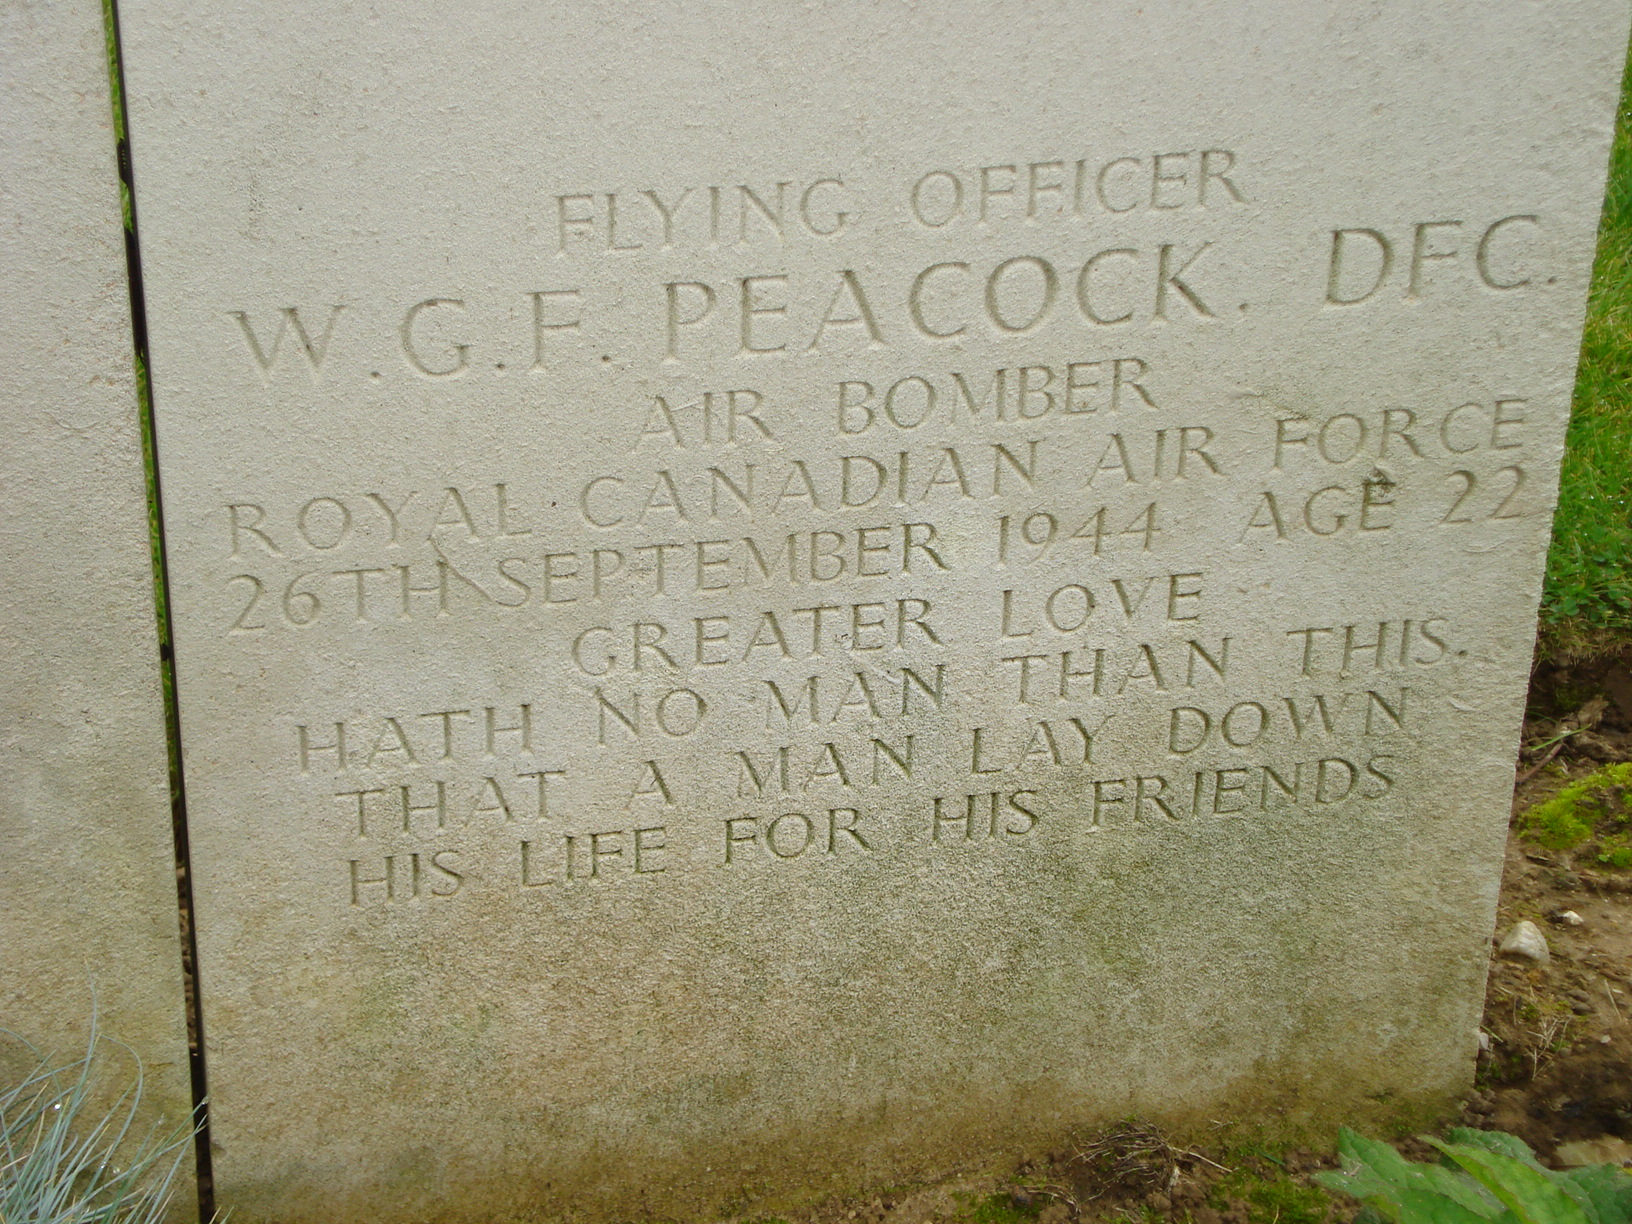 Inscription – Photo taken in October 2007 while visiting the cemetery with my father (Warren Grant) who was a first cousin and boyhhood friend of Wilfred Peacock.